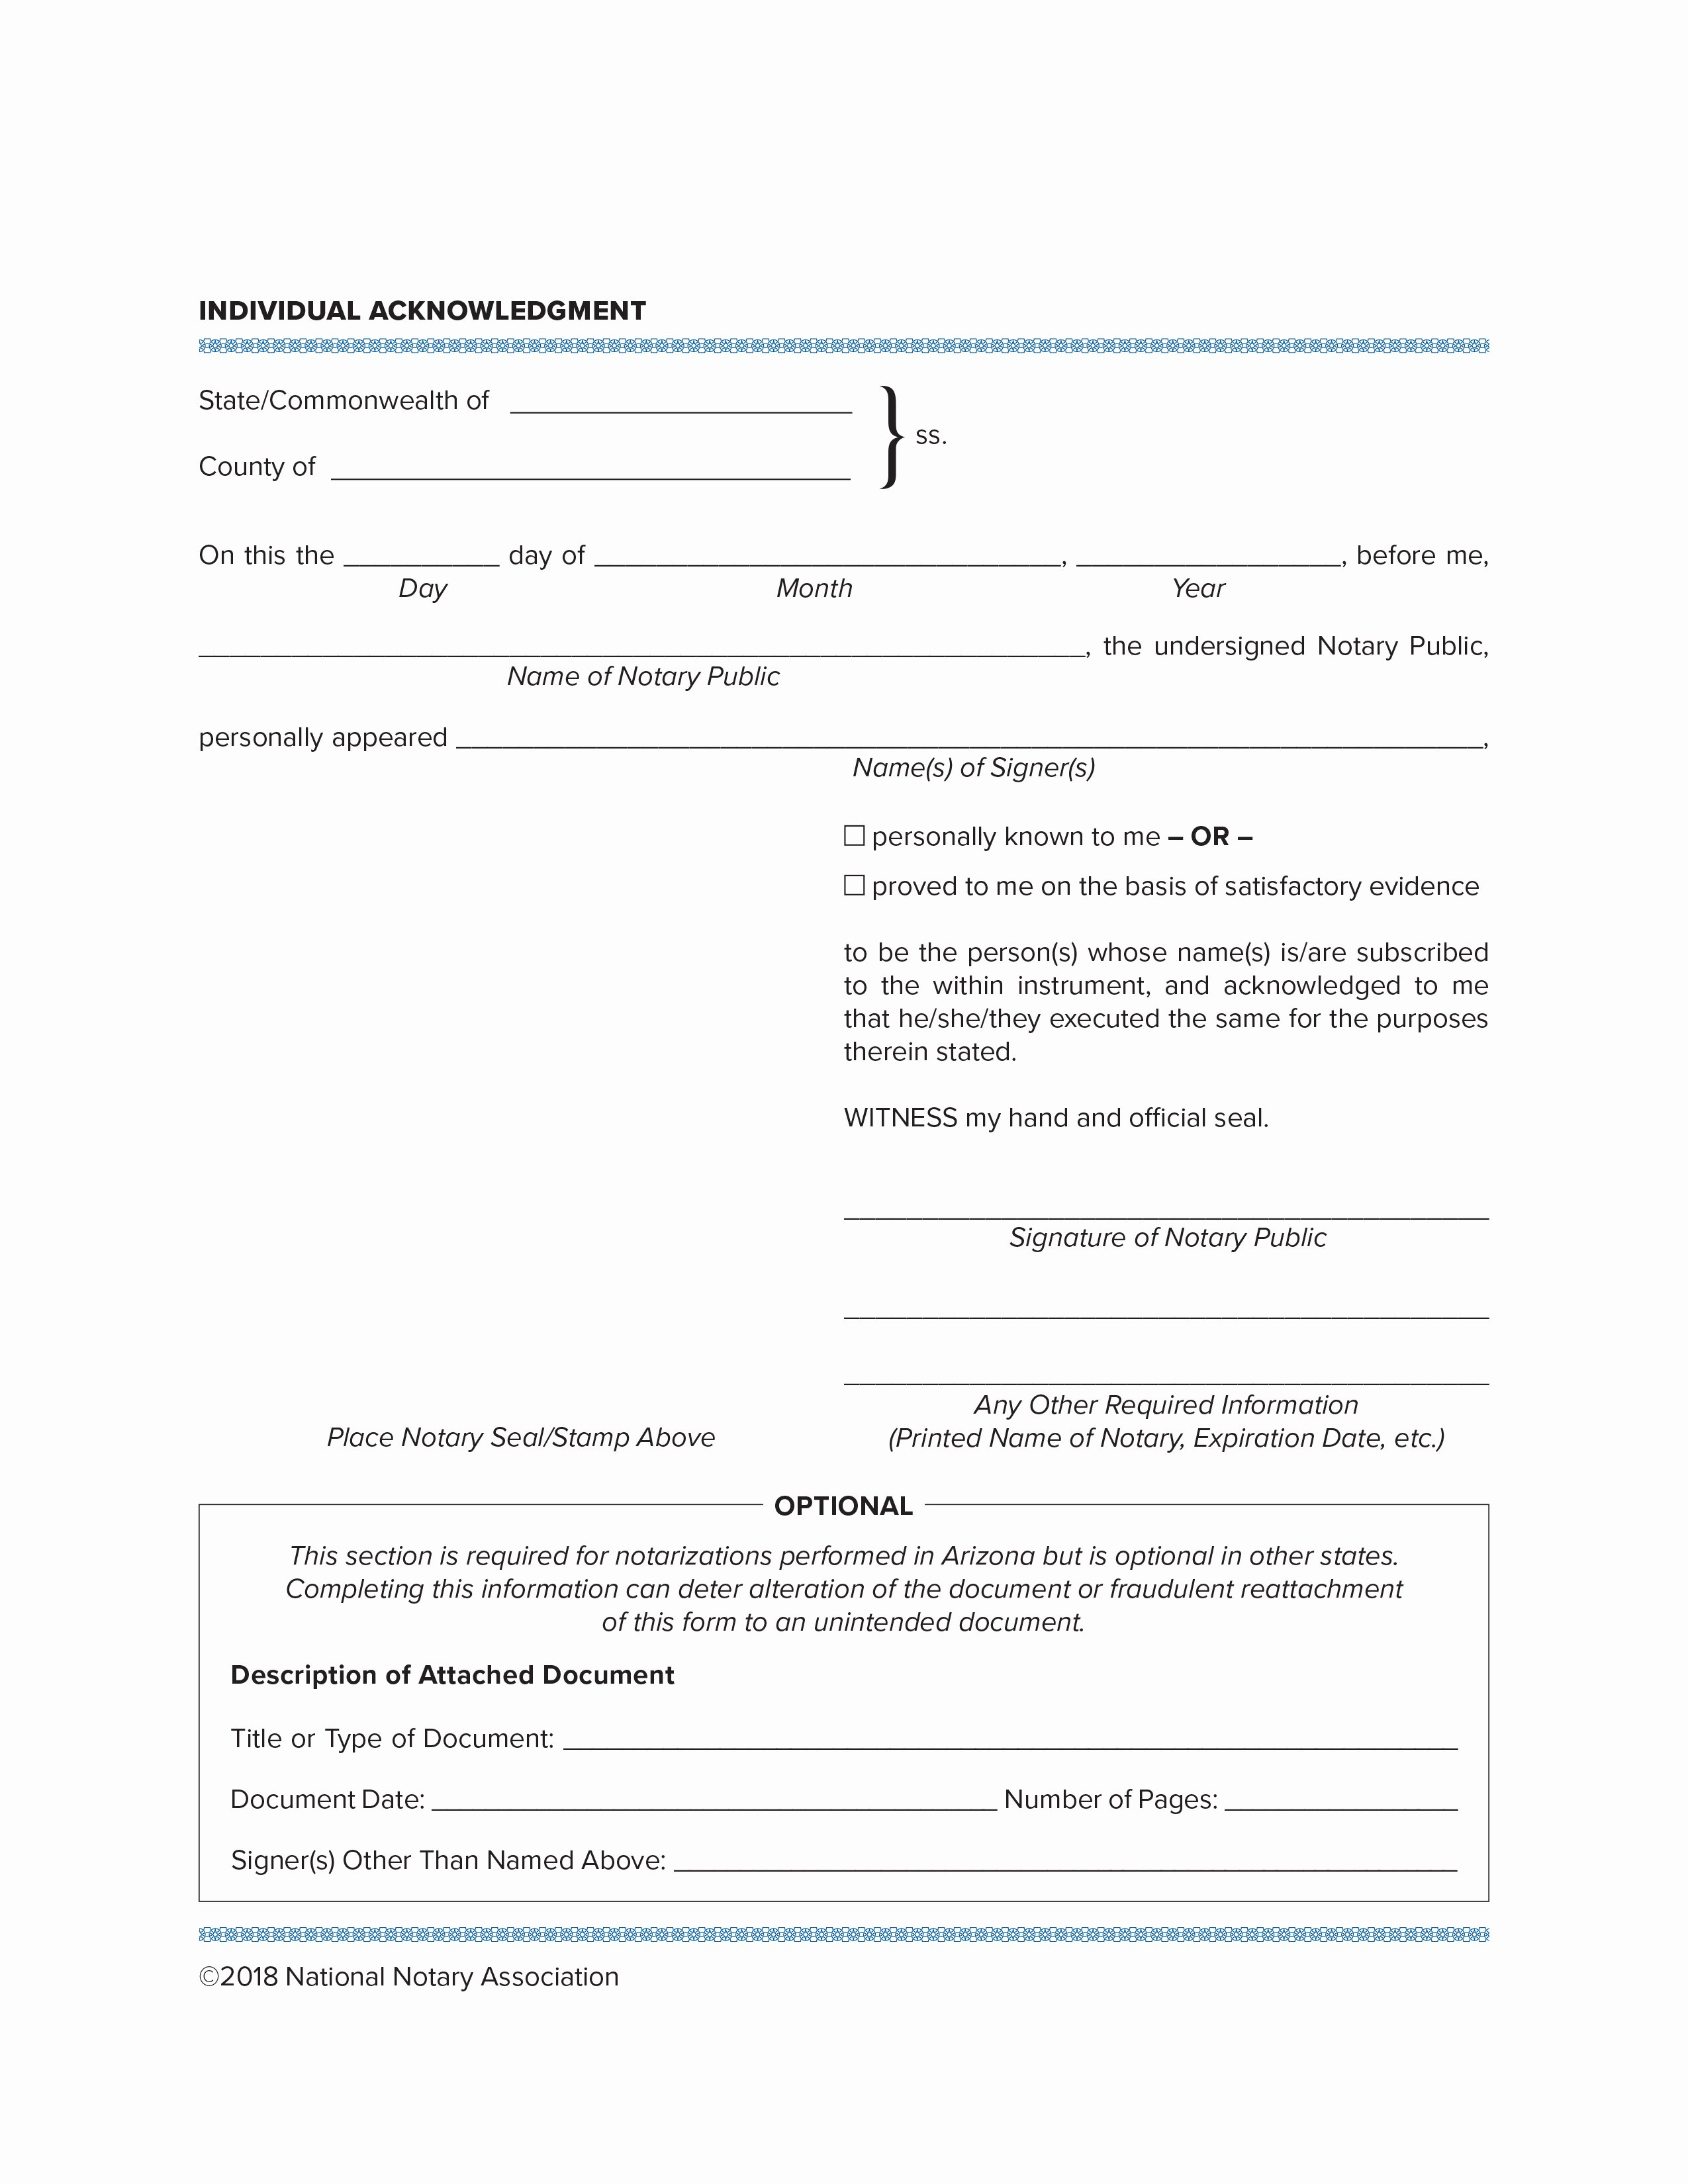 Notary Public Document Sample Best Of Notary Essentials the Difference Between Acknowledgments